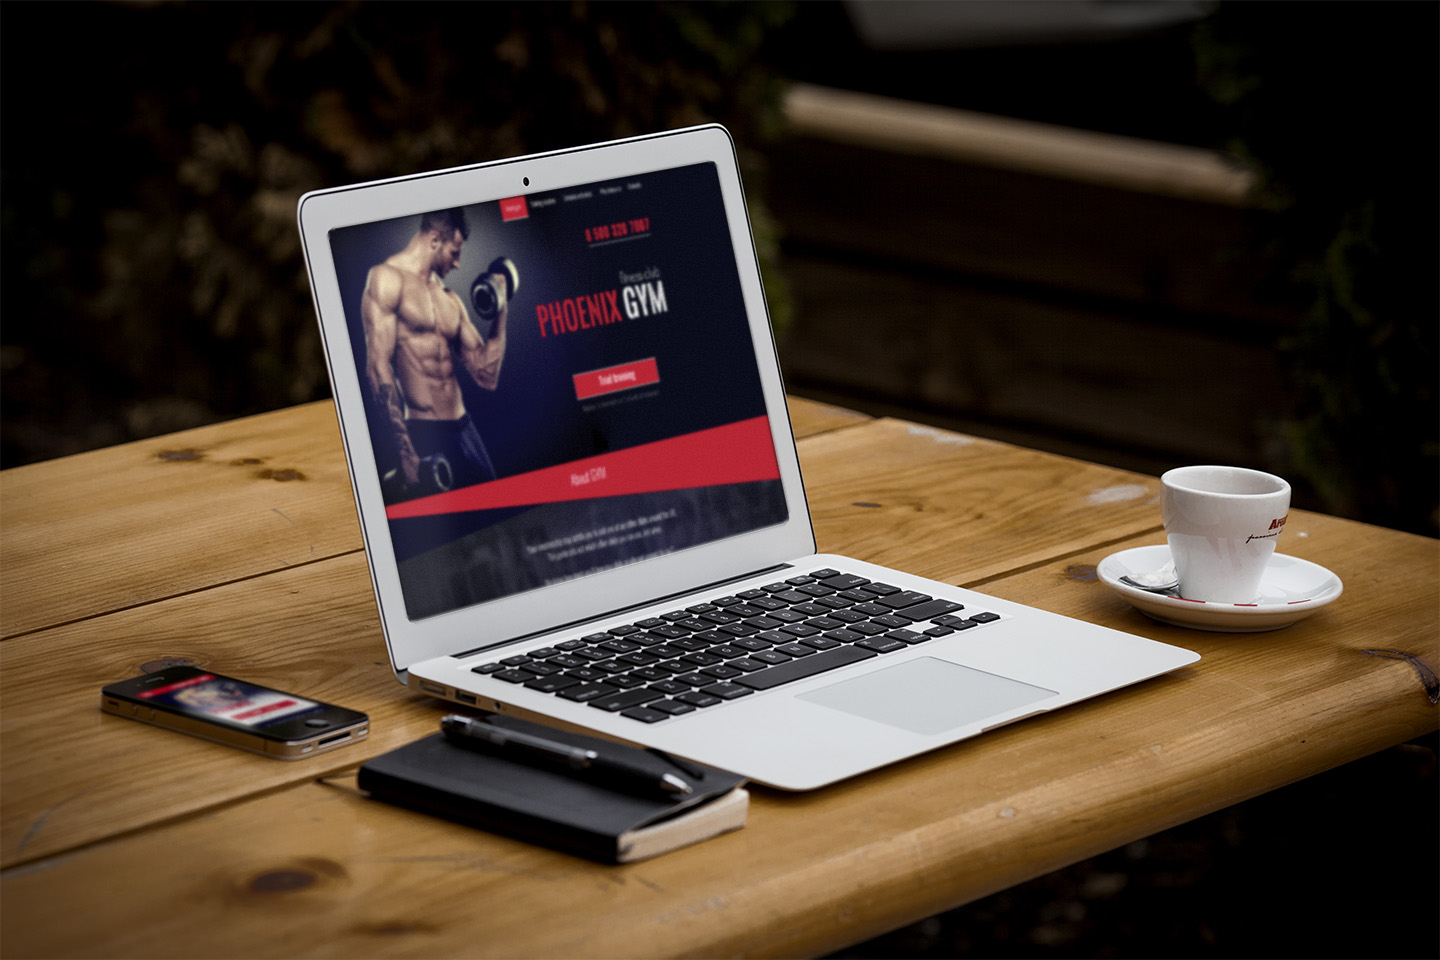 Phoenix Gym - Gym and Fitness Club Responsive PSD Template - 3